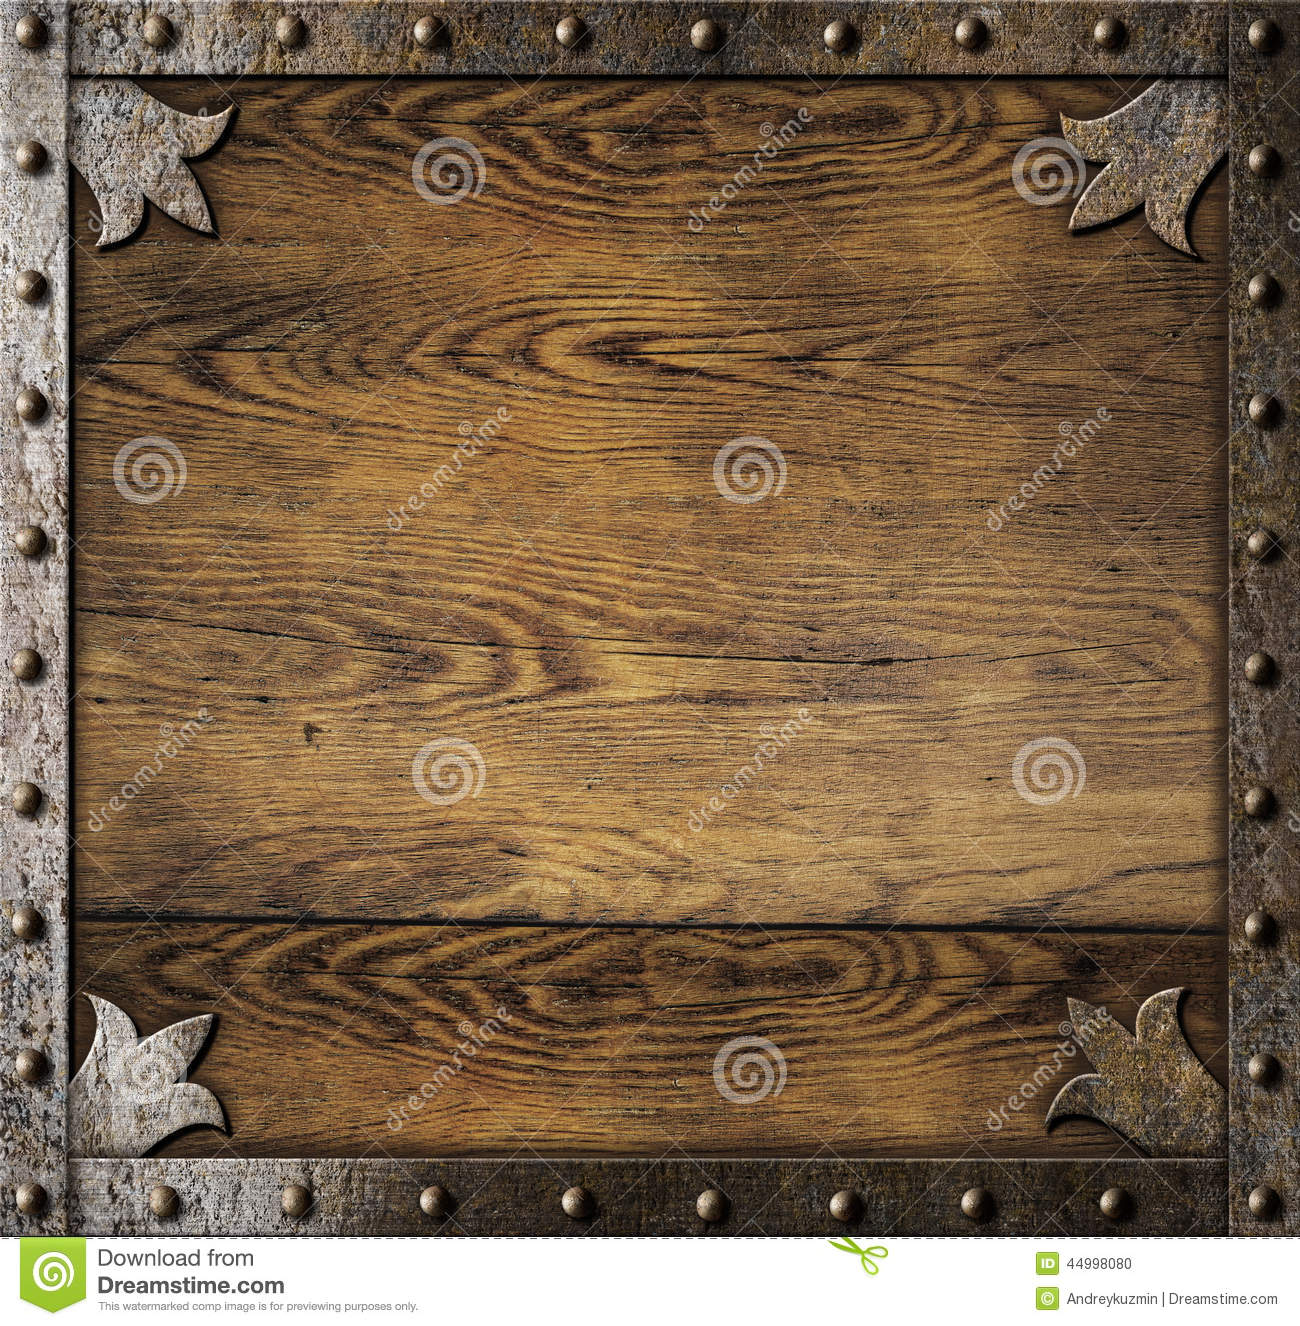 medieval metal frame over old wooden background stock photo image of smithy house 44998080. Black Bedroom Furniture Sets. Home Design Ideas